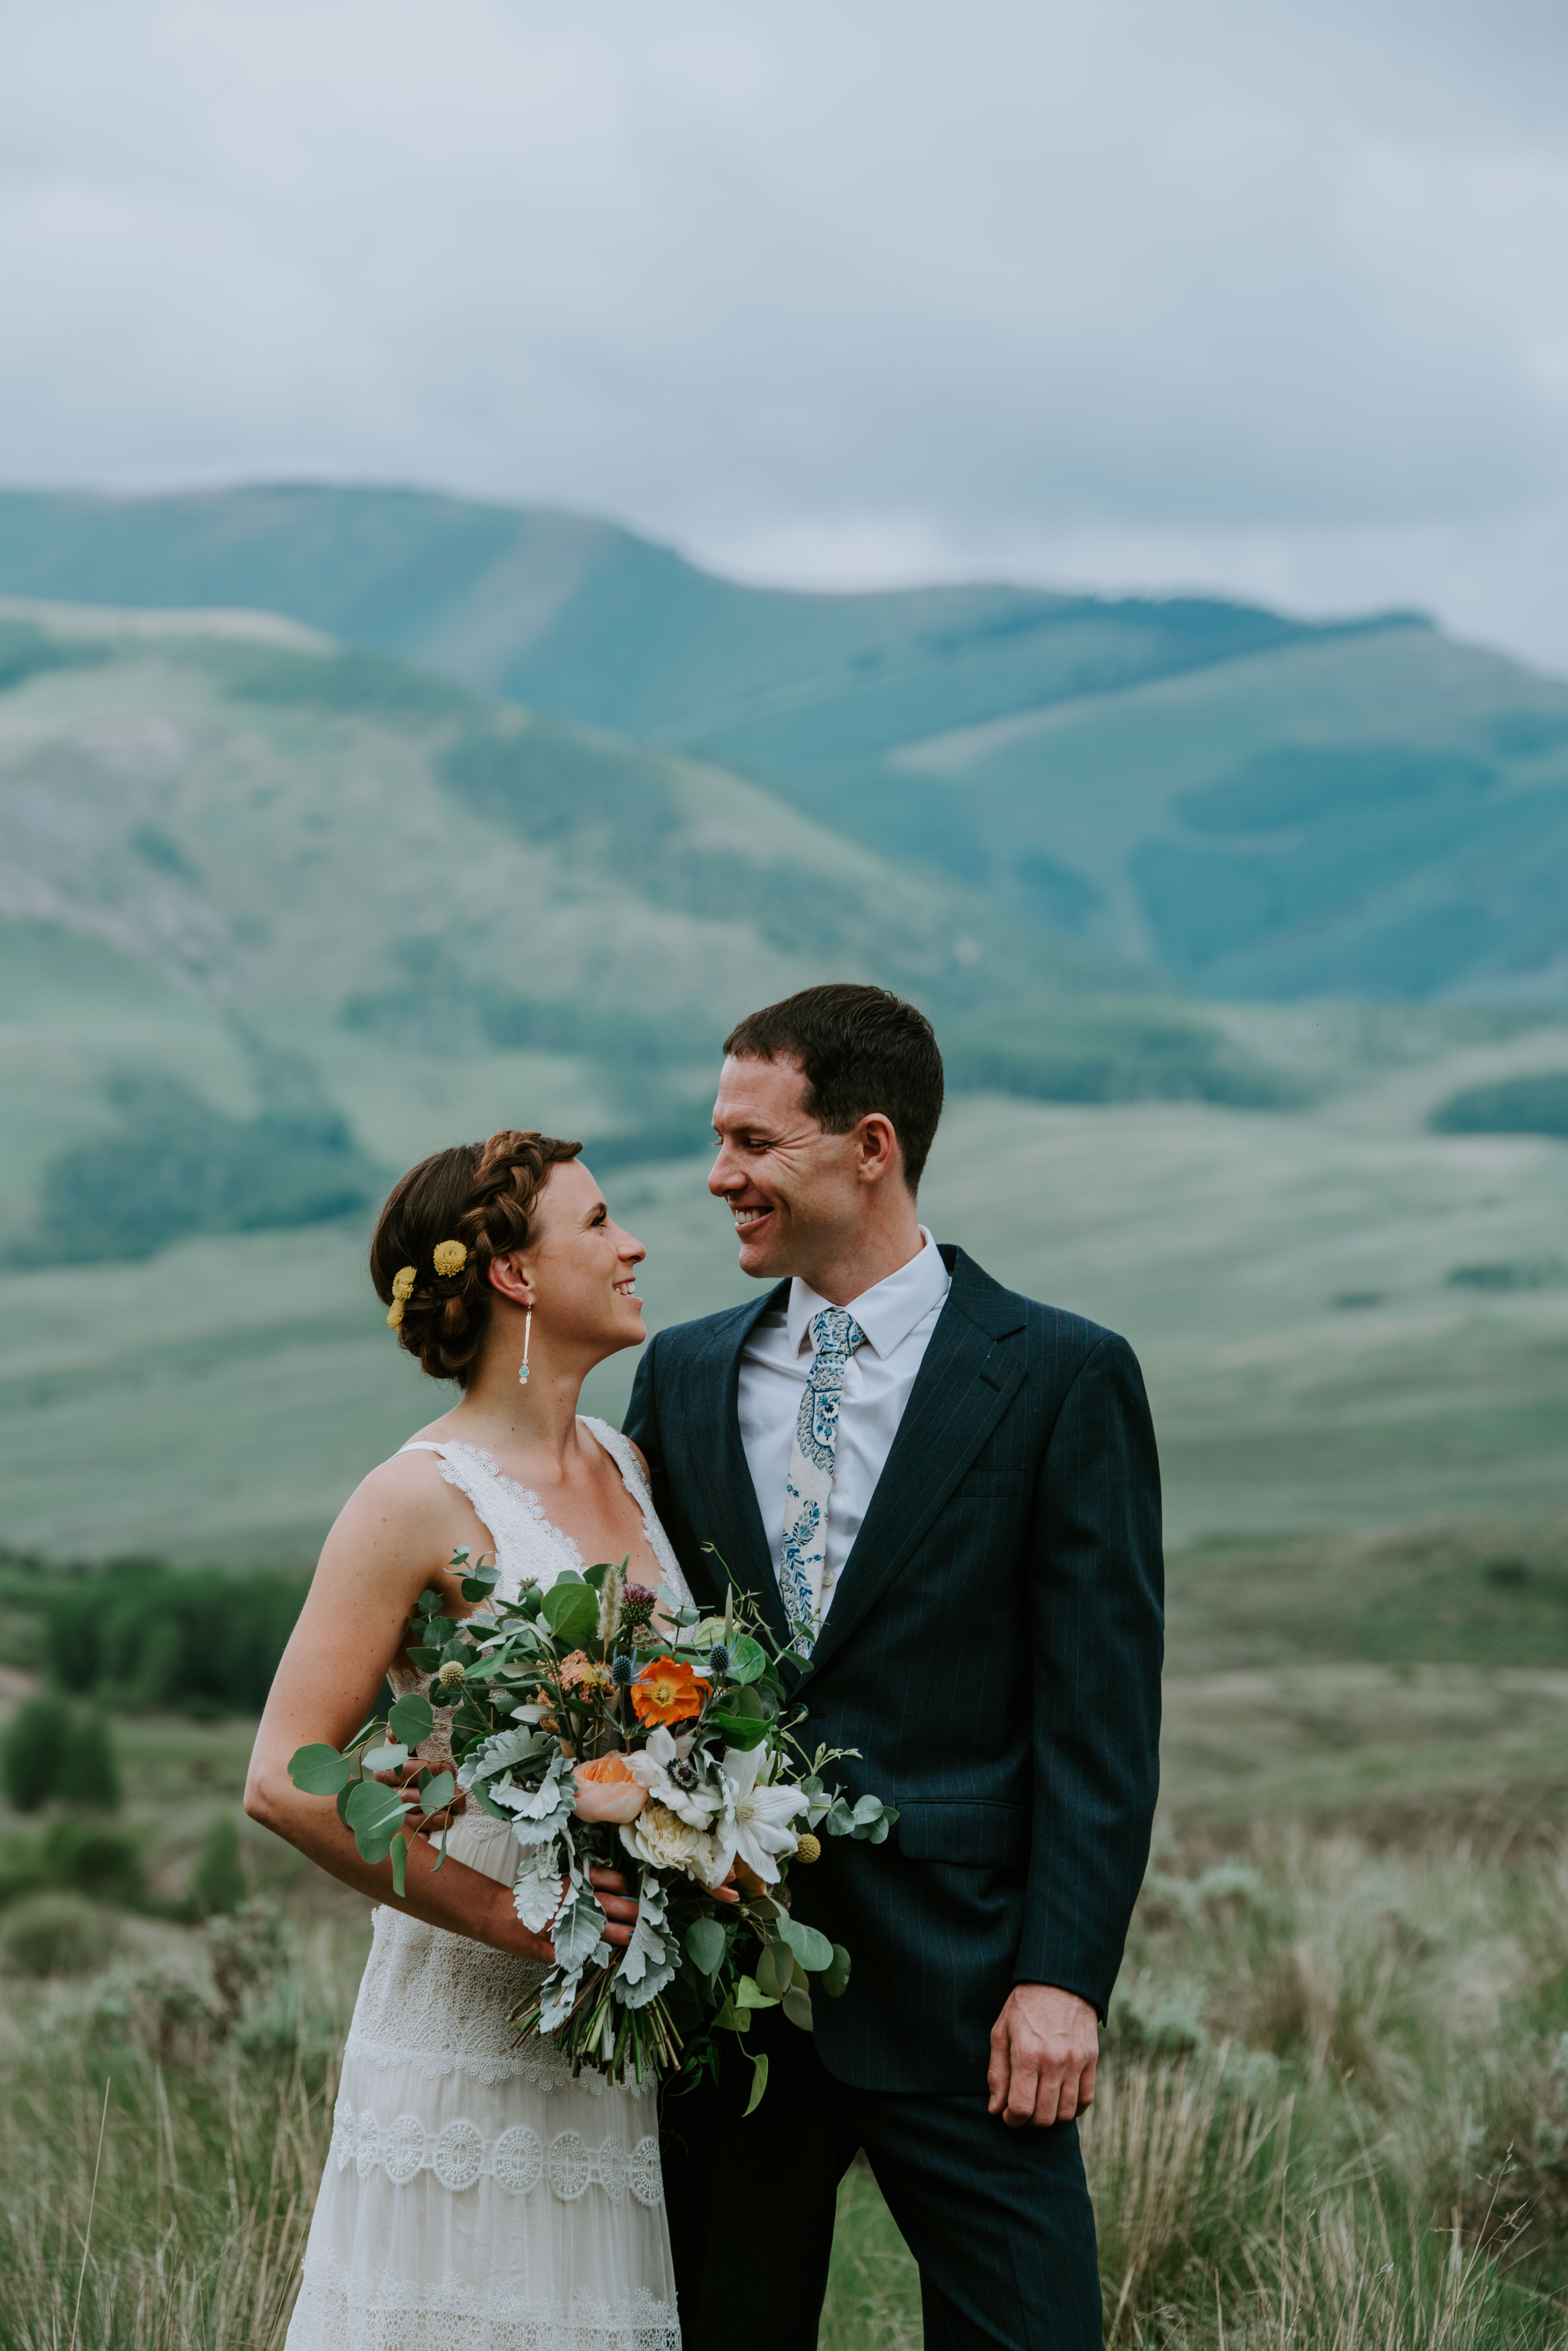 Laura_Alexe_Wedding_Crested_Butte_MegONeillPhotography__180616_35